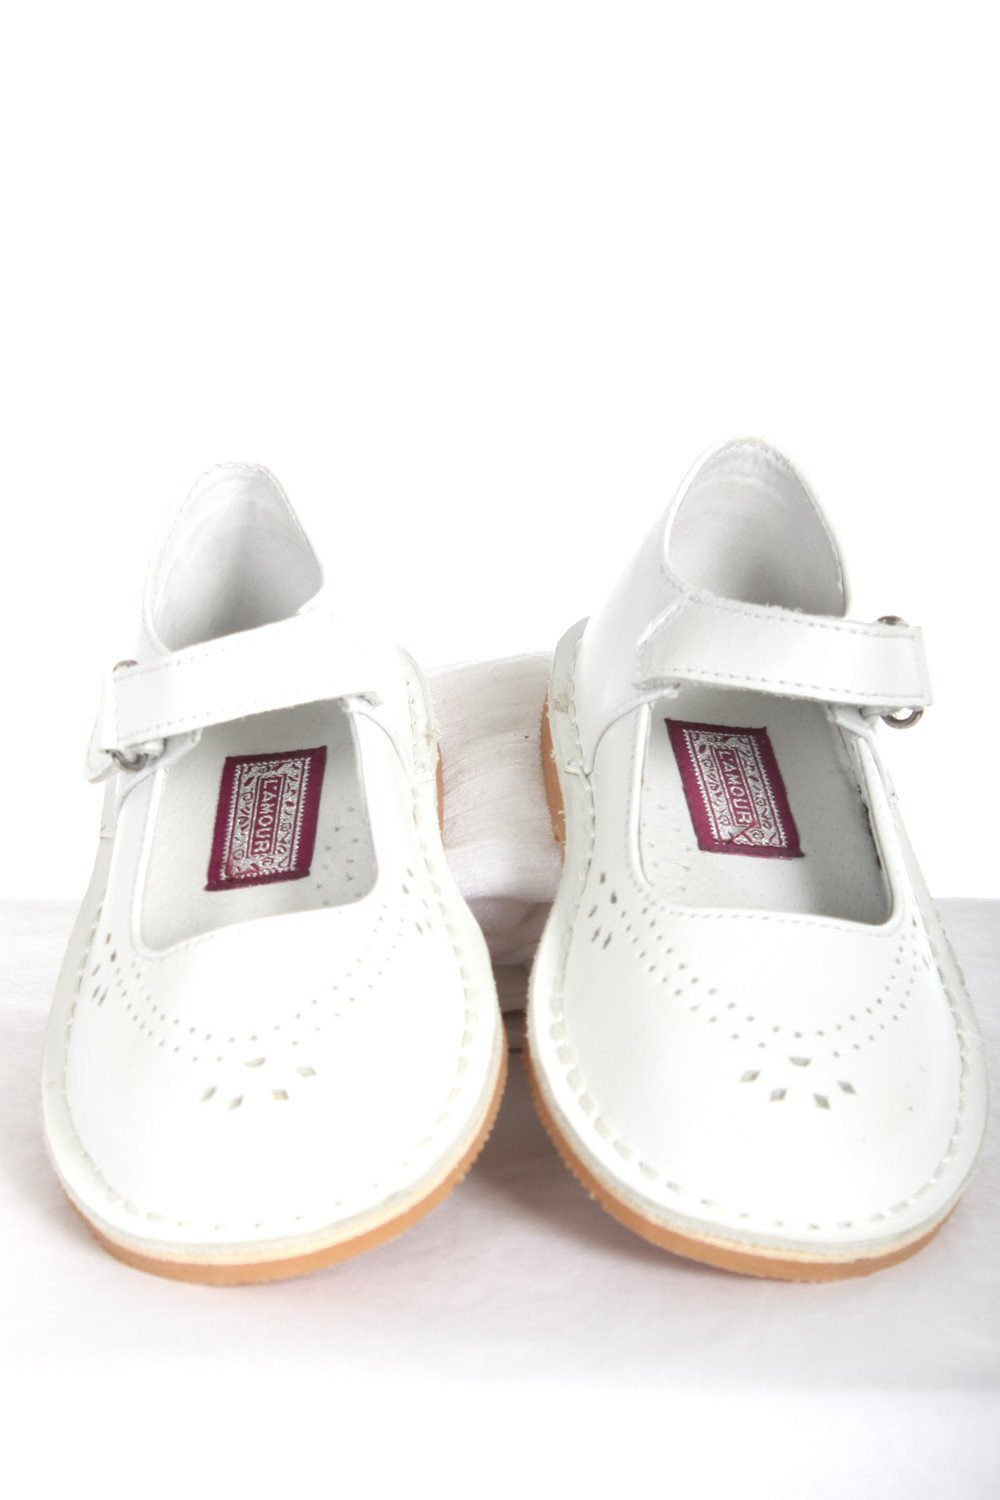 l amour white leather janes size 9 toddler 9 shoes